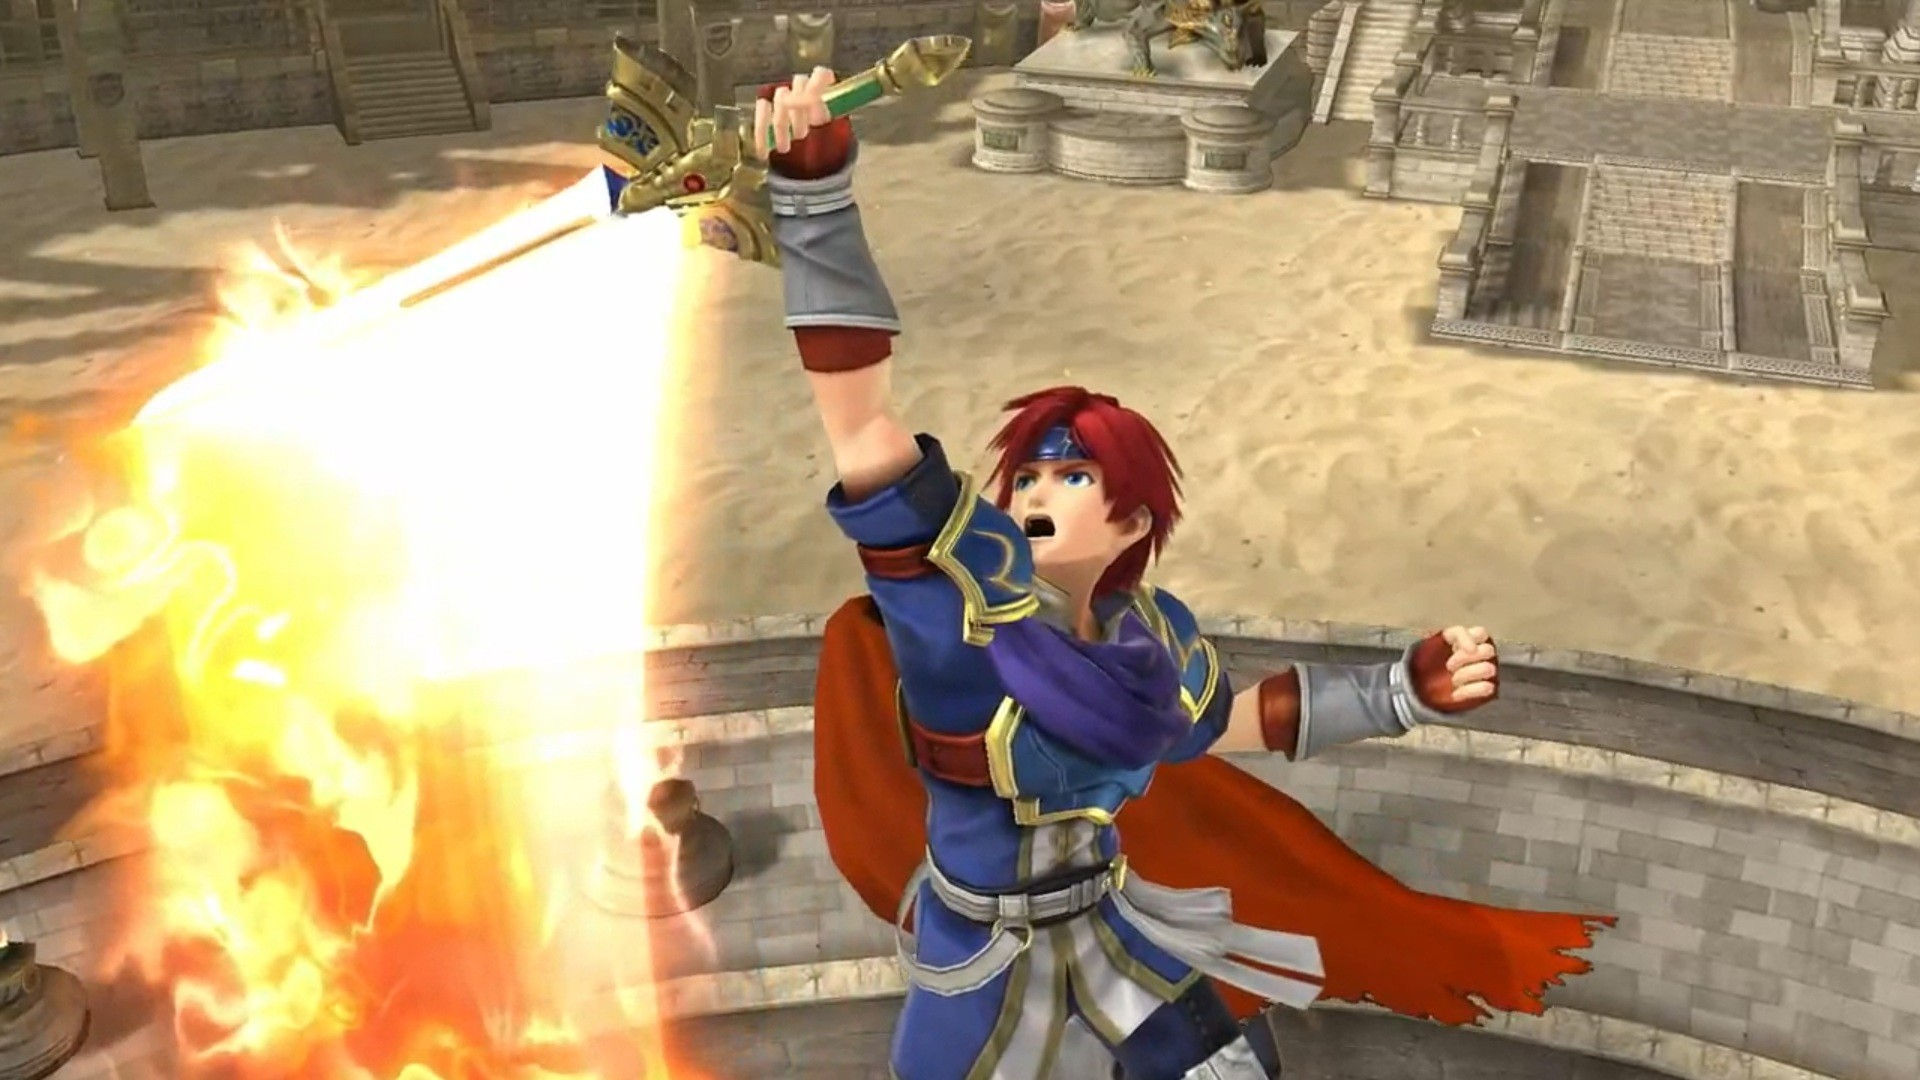 1920x1080 After Robin, Lucina, Ike, and Marth were all showcased for the Fire Emblem  family in ...